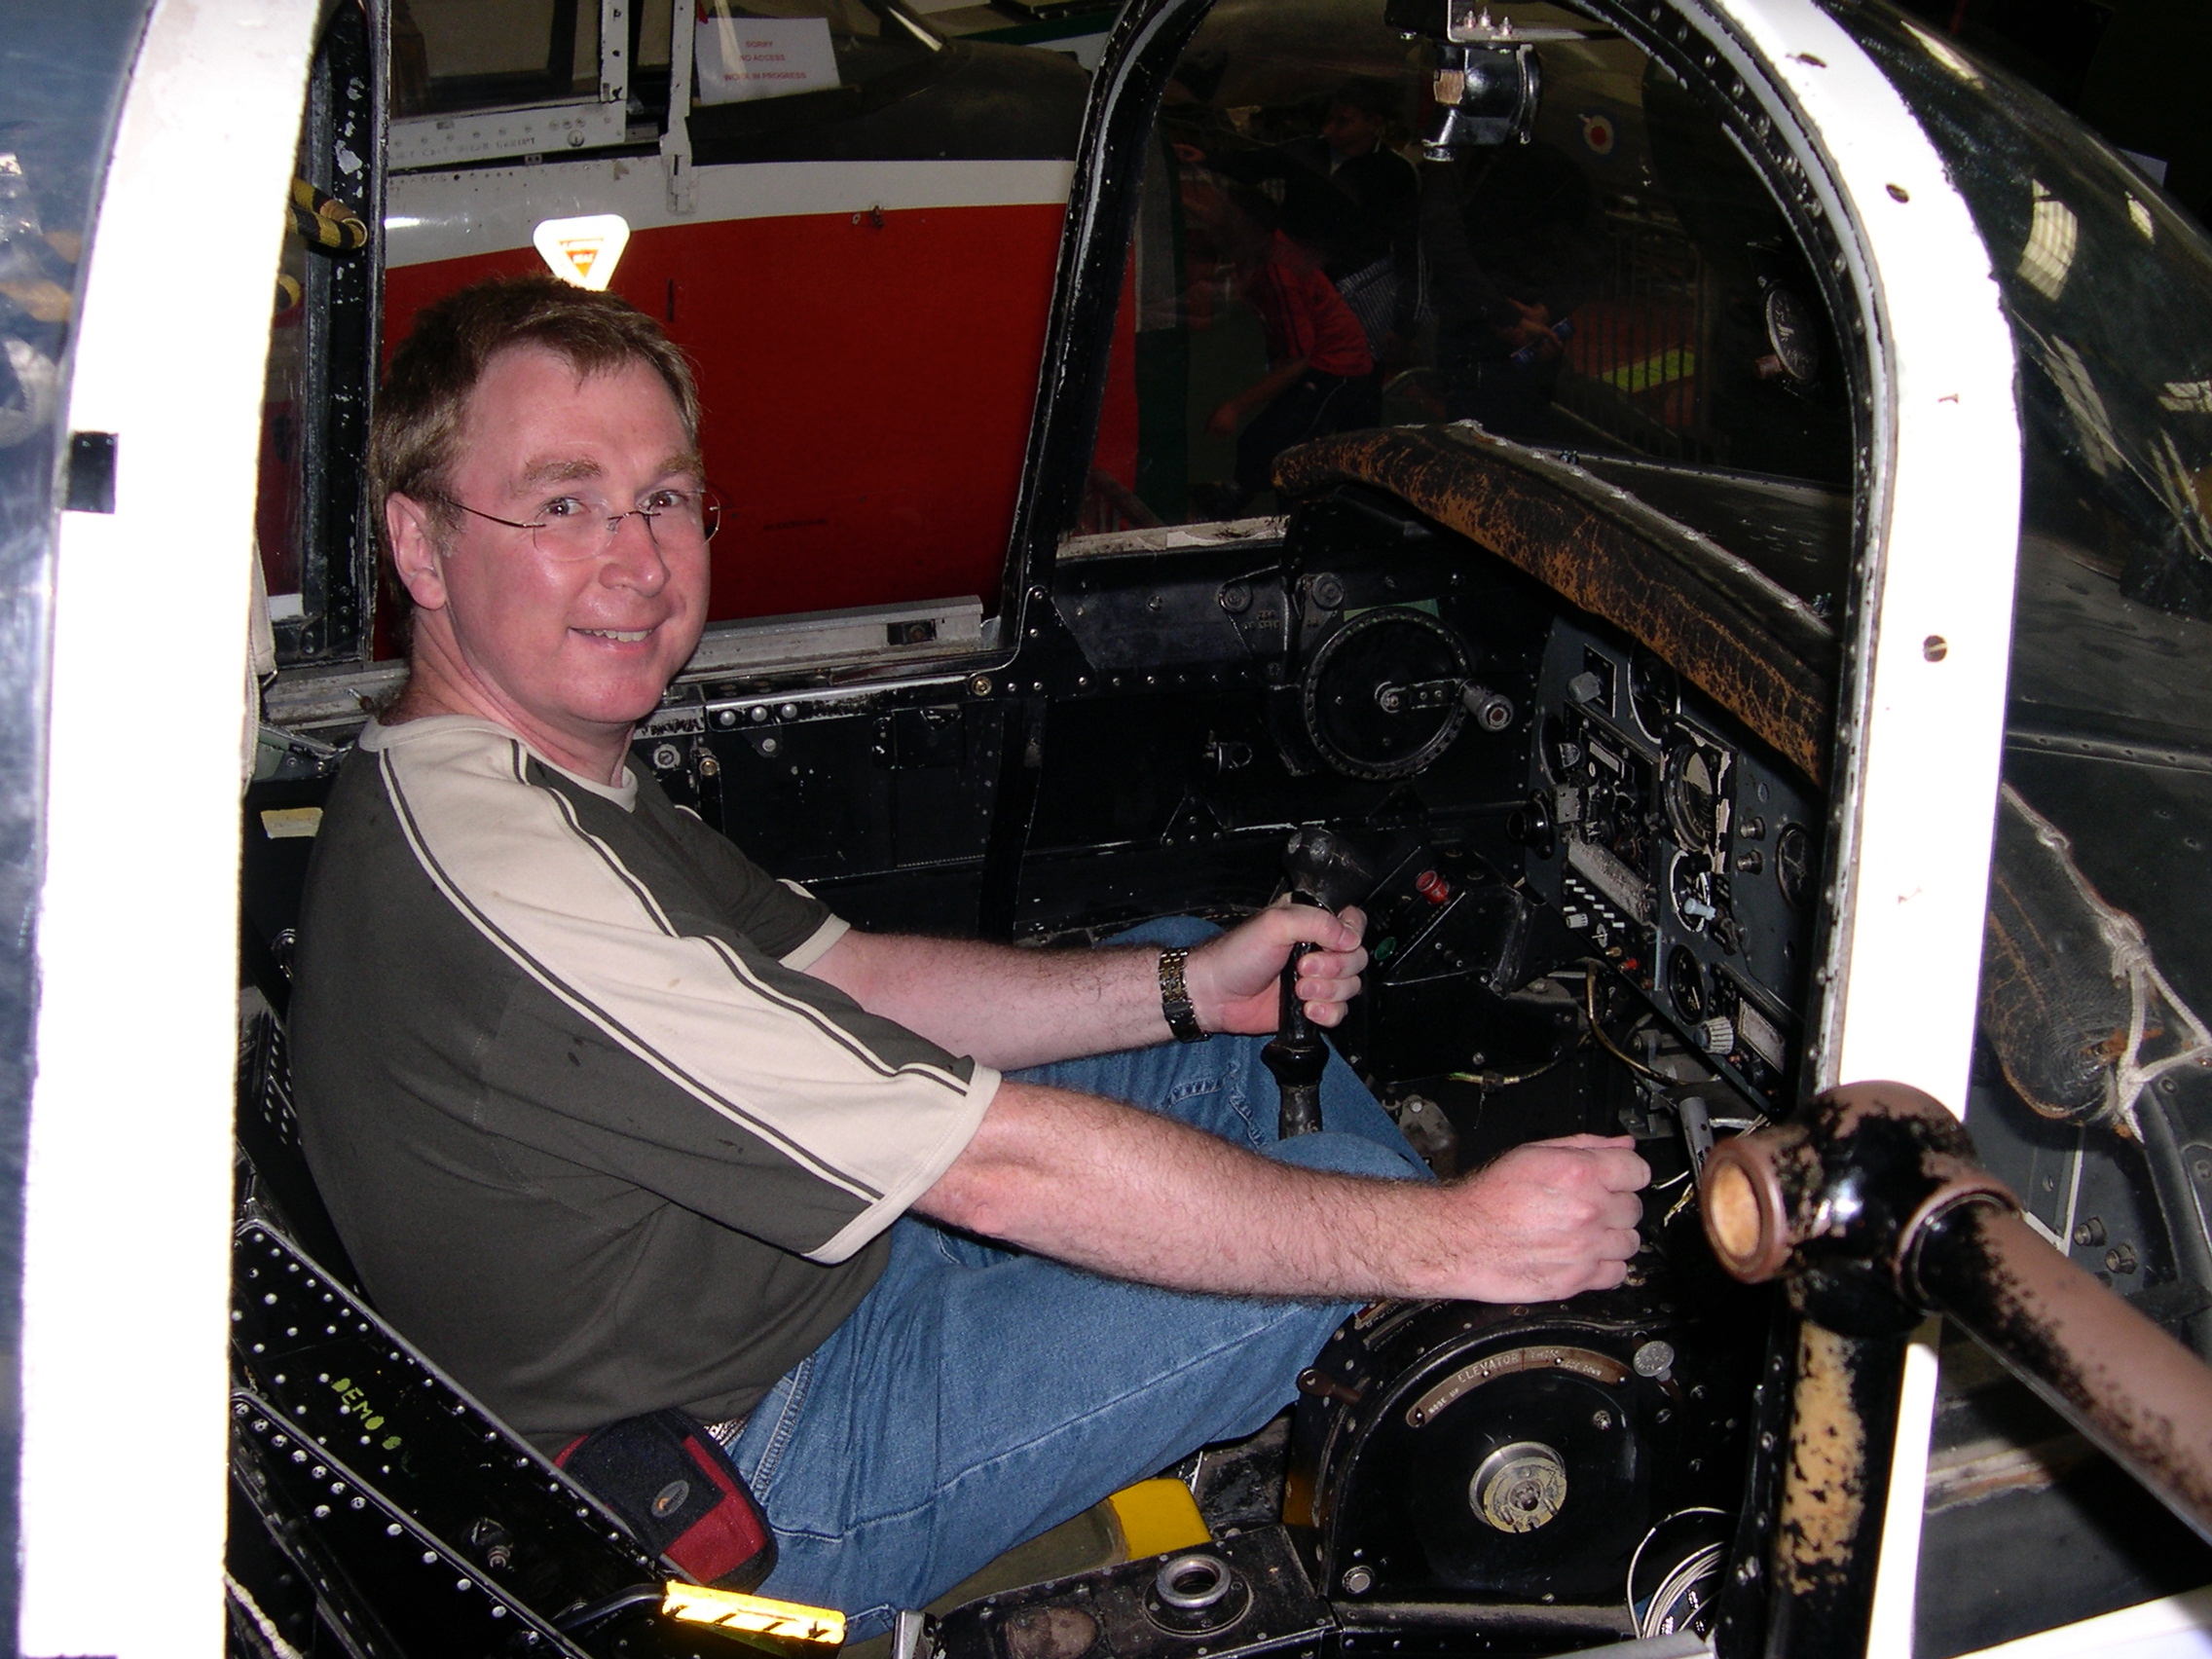 Vince Poynter sat in a old aircraft trainer cockpit